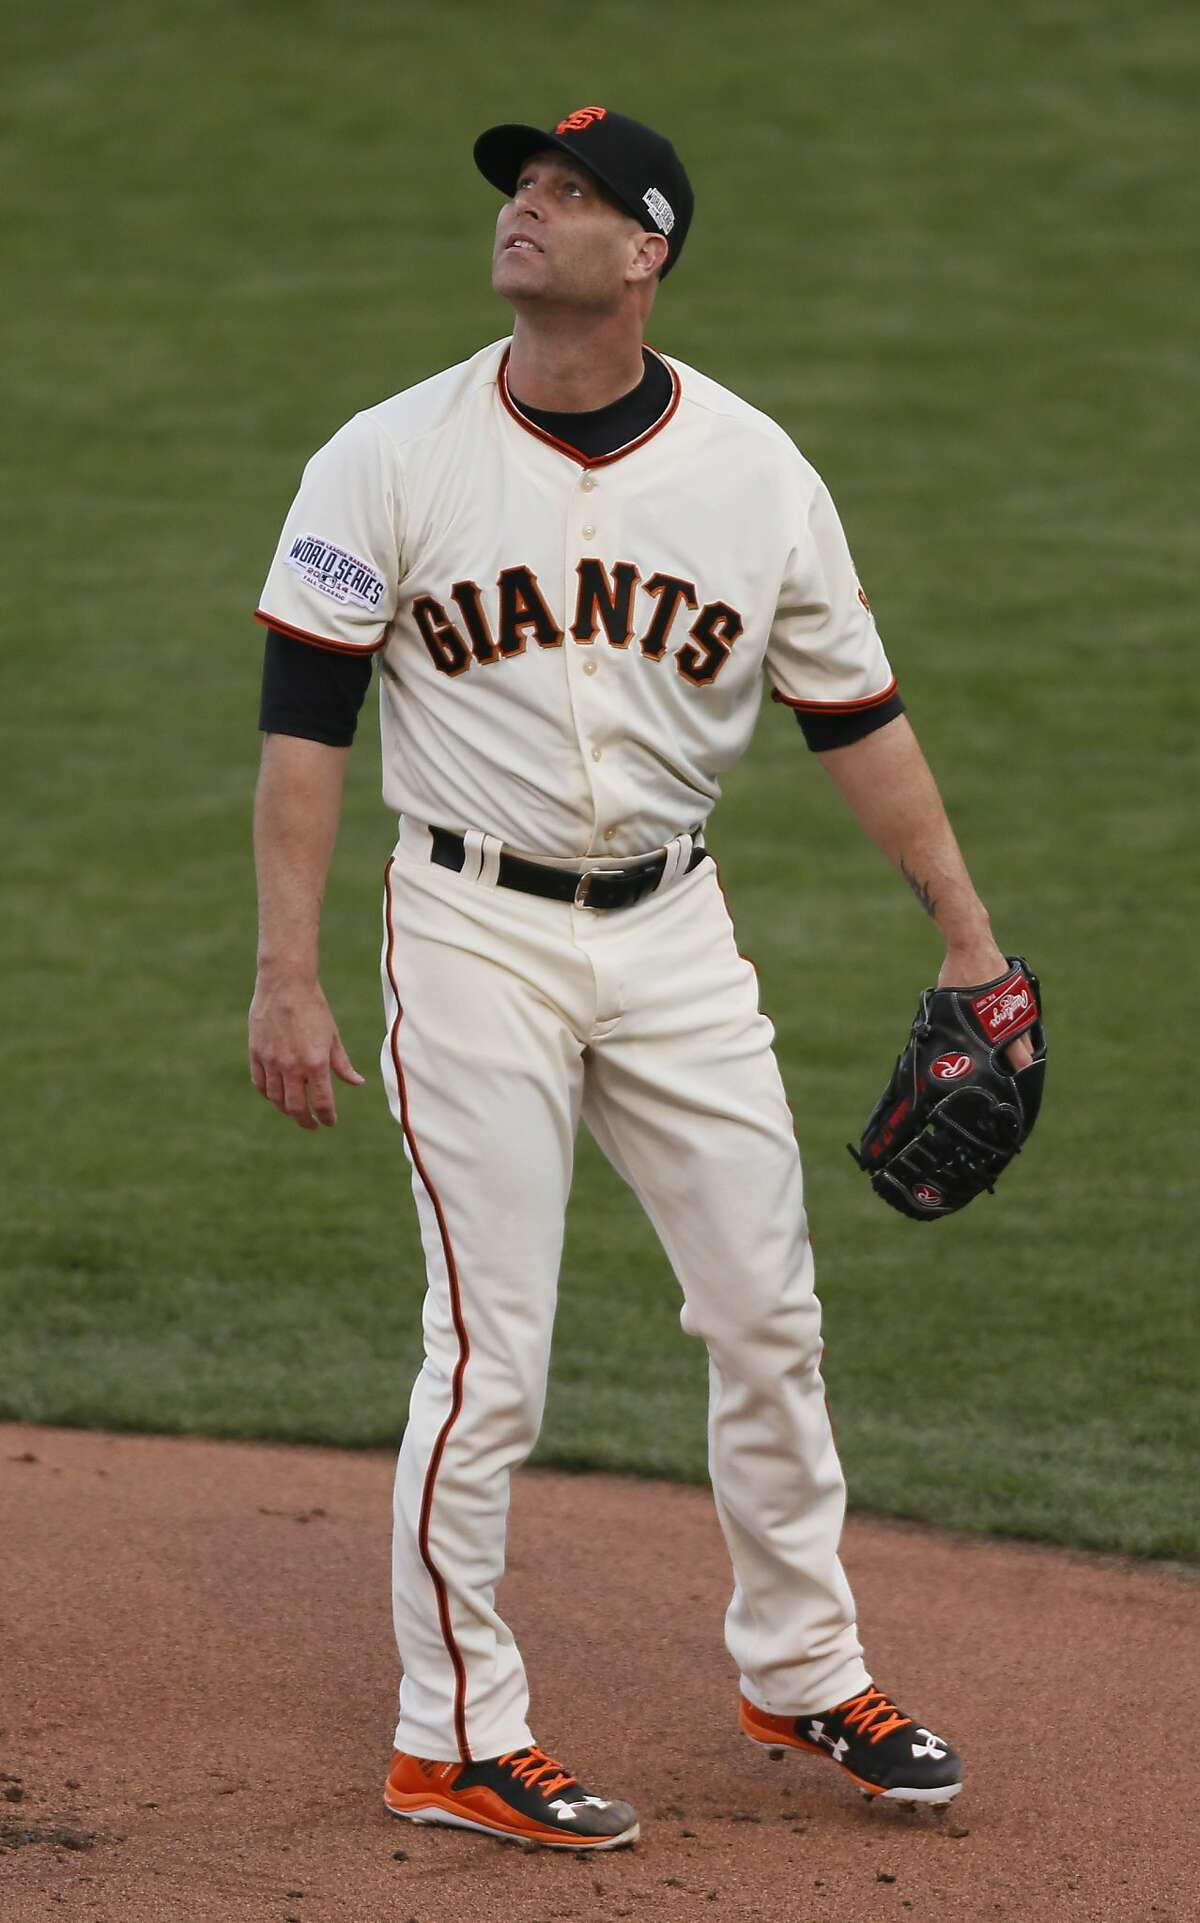 Giants Tim Hudson watches a double by Royals Alcides Escobar in the first inning during Game 3 of the World Series at AT&T Park on Friday, Oct. 24, 2014 in San Francisco, Calif.